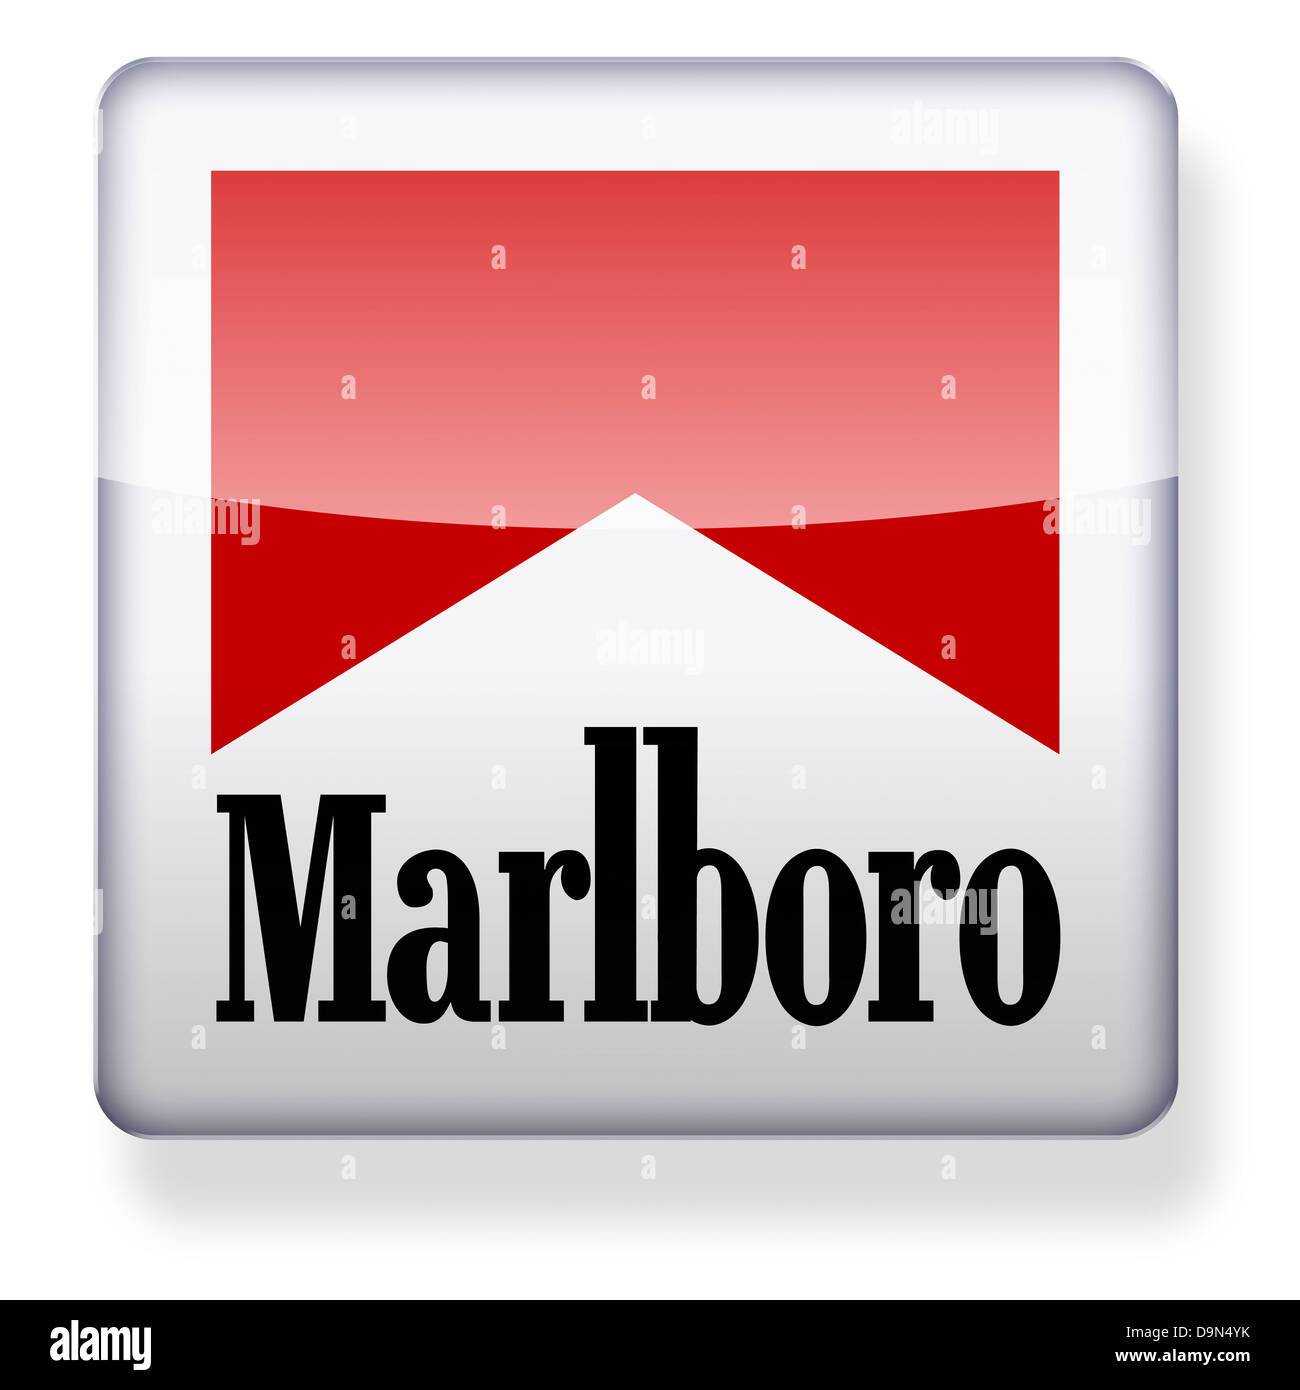 Cheapest place to buy cigarettes Marlboro Chicago